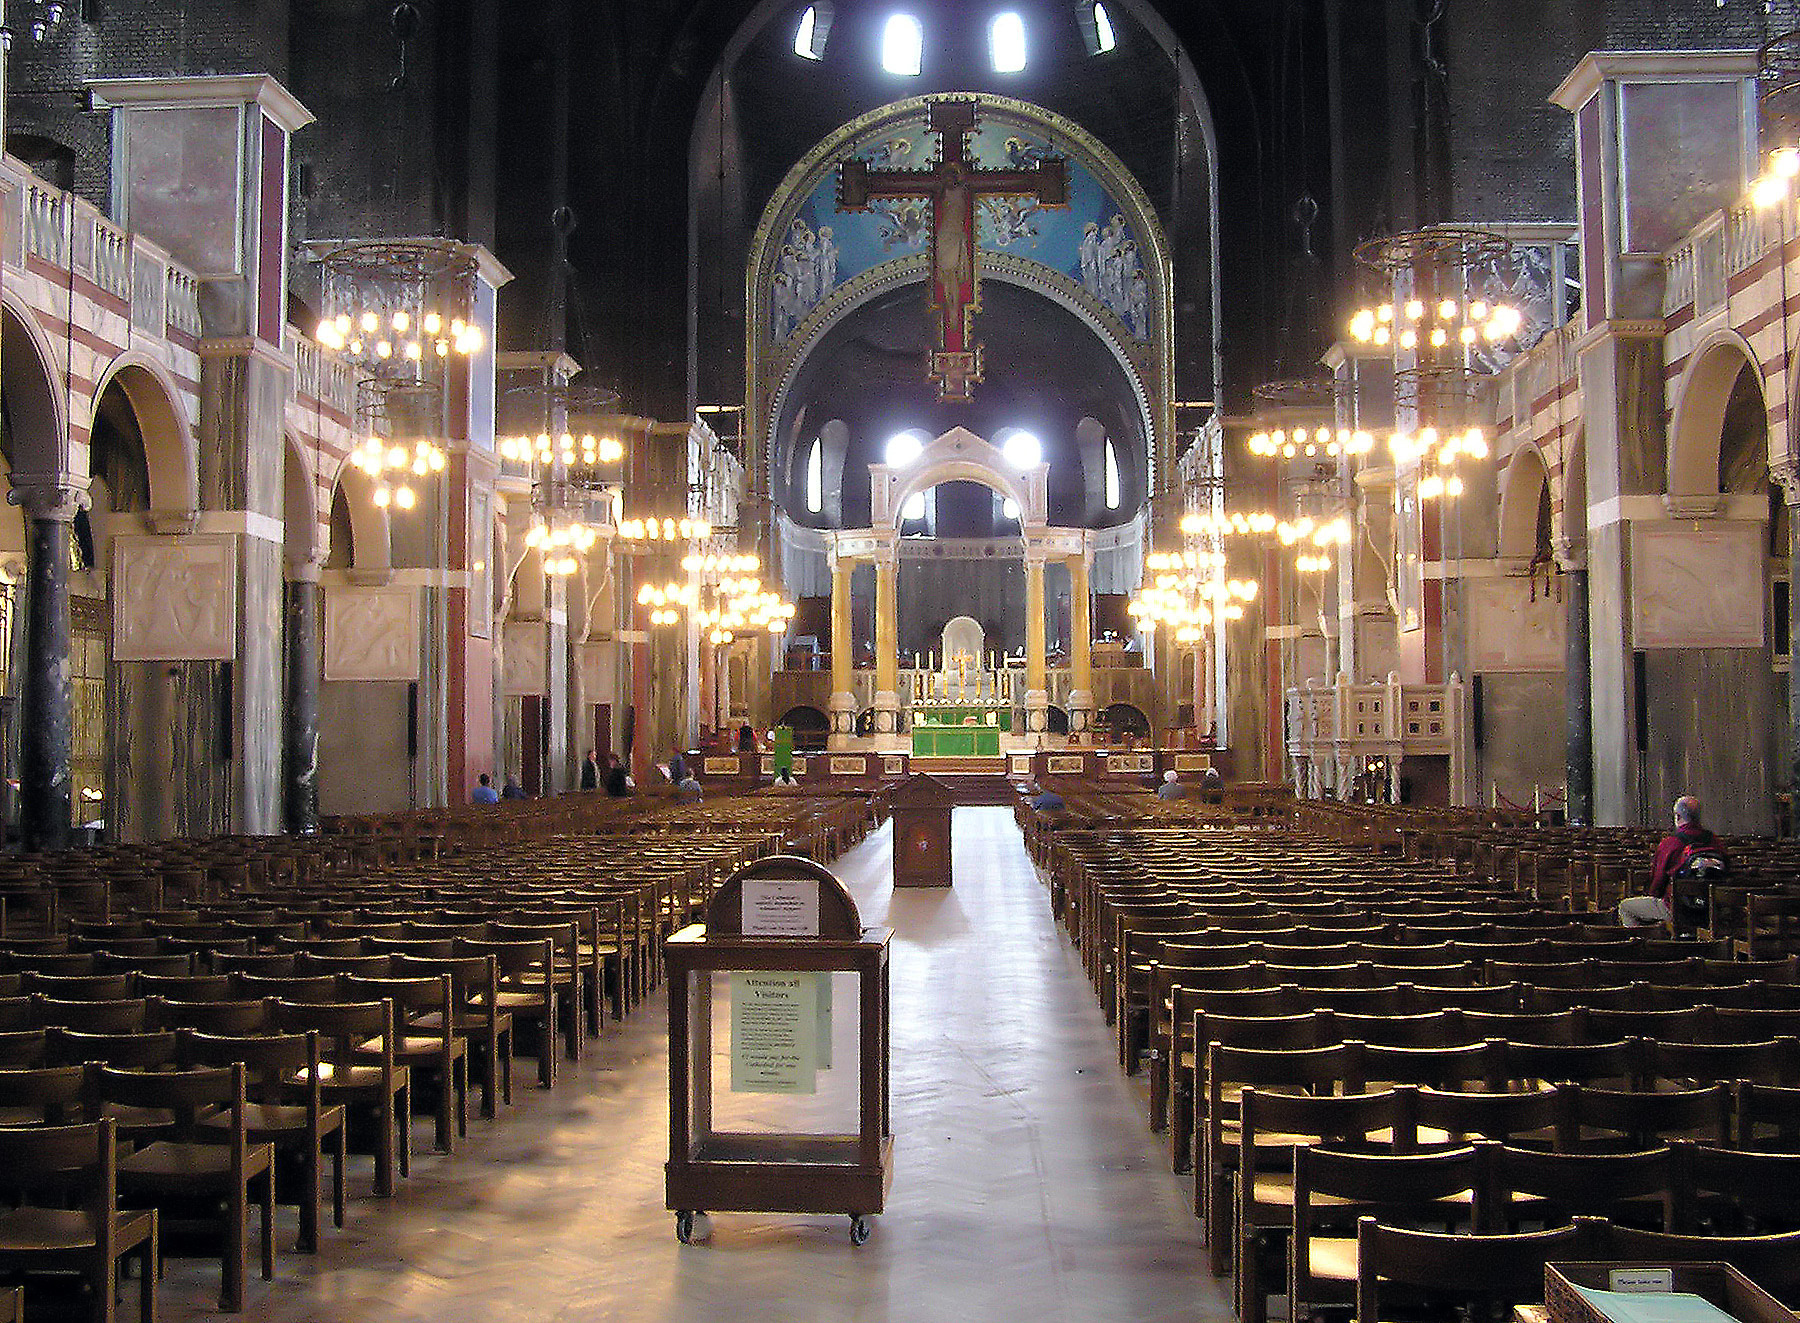 File:Westminster.cathedral.interior.london.arp.jpg - Wikimedia Commons